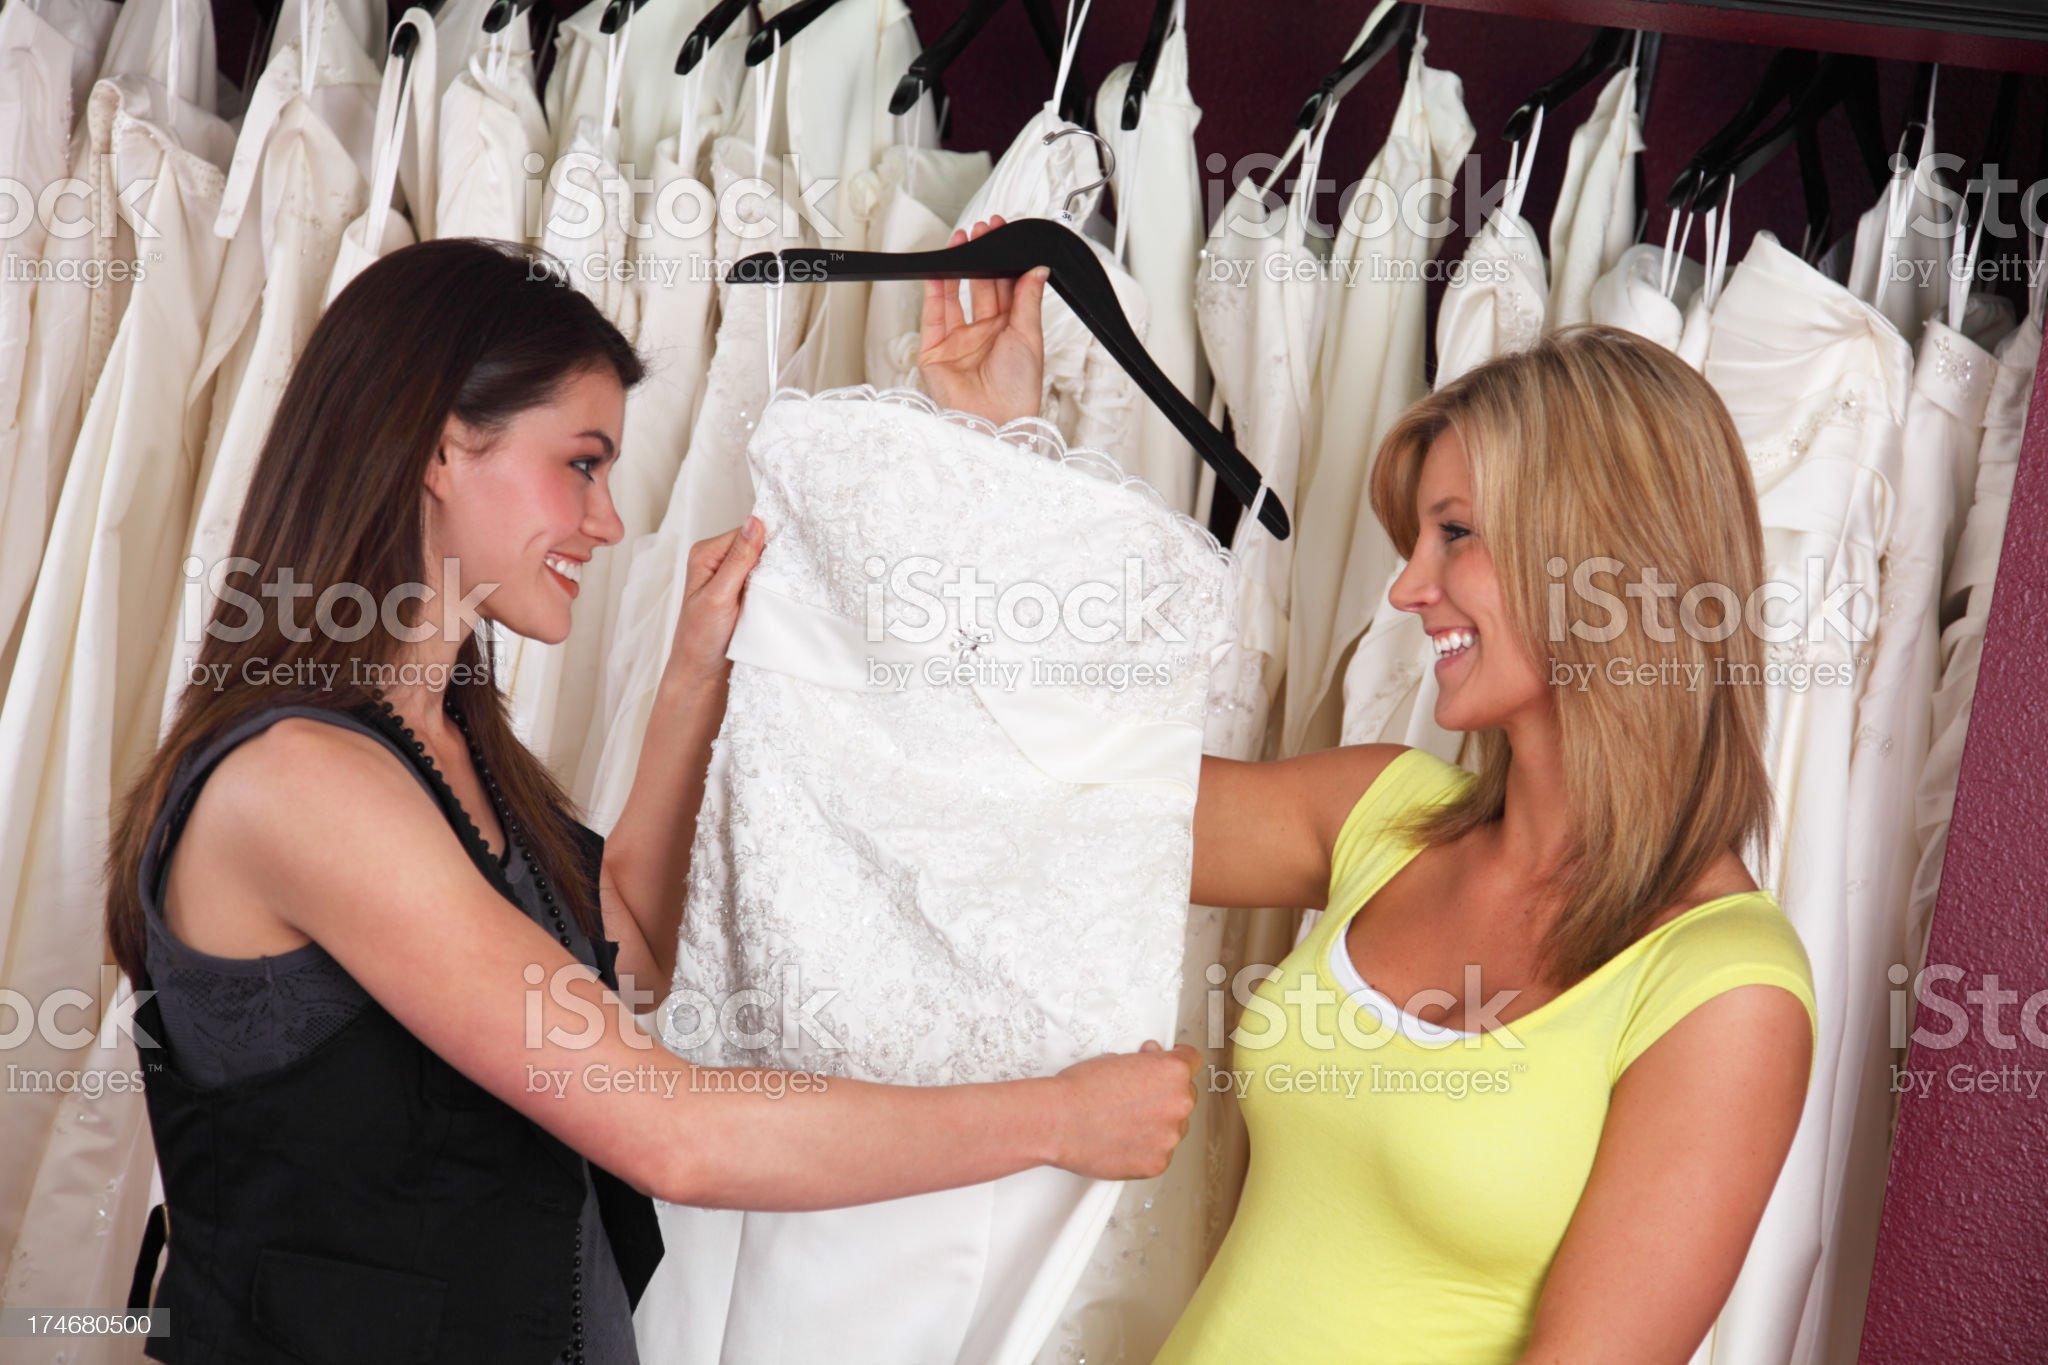 Women Shopping For Wedding Dress royalty-free stock photo